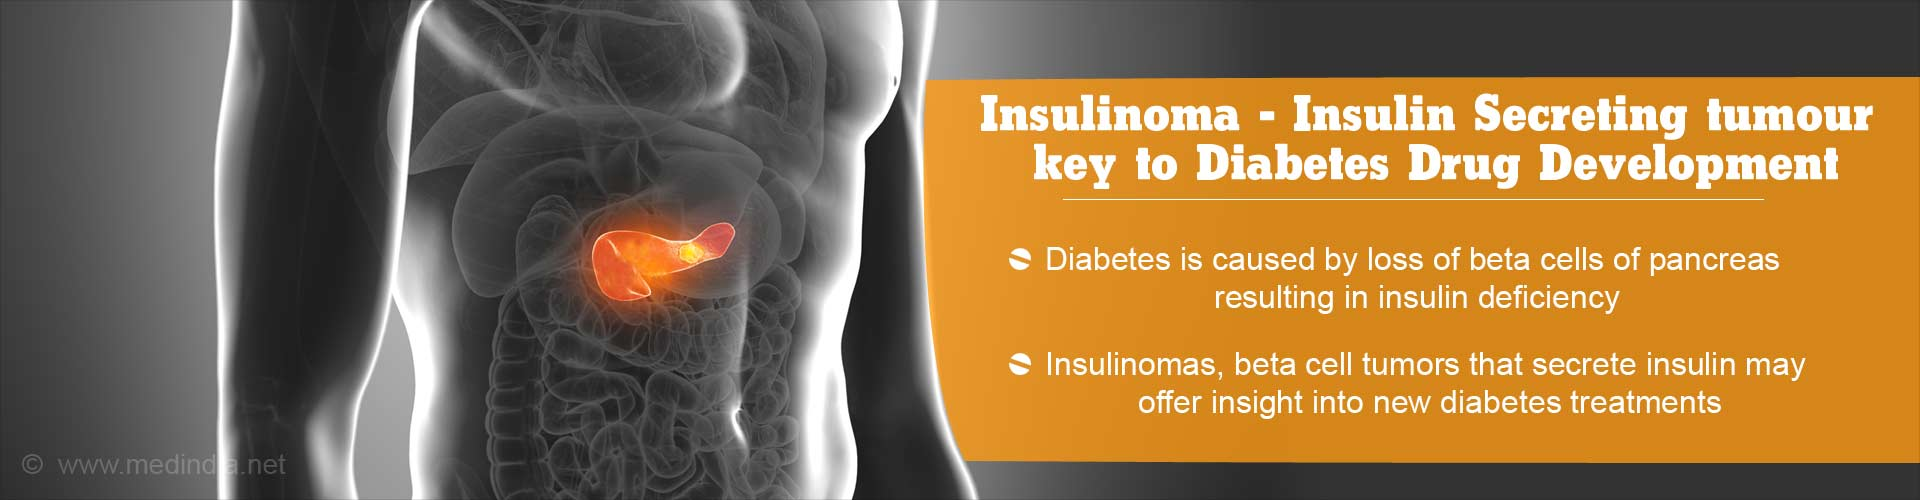 Insulinomas - Benign Tumors Secreting Insulin May Offer Insights To Combat Diabetes